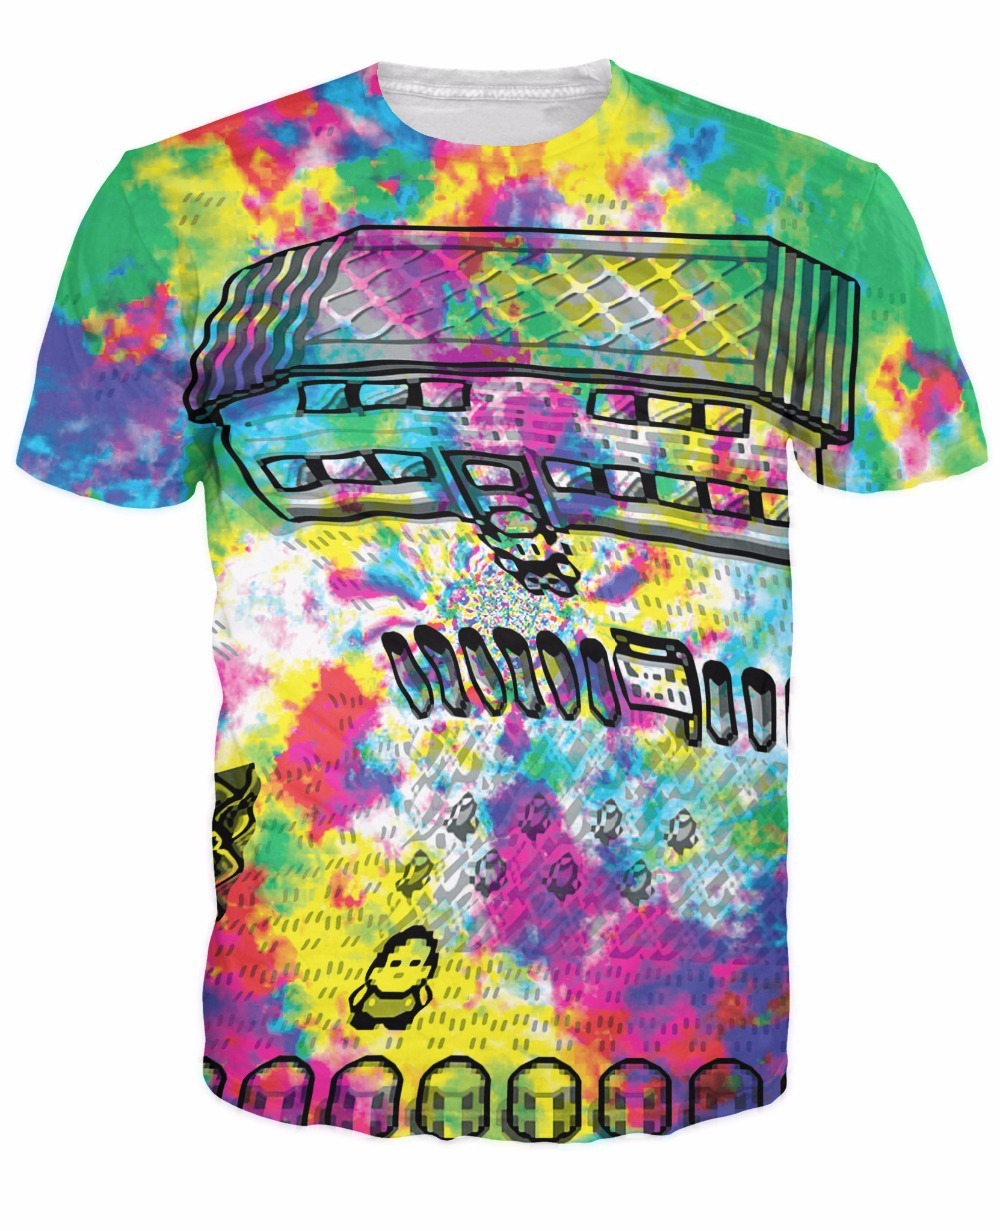 Pallet town acid trip t shirt pokemon boring place trippy for T shirt printing place